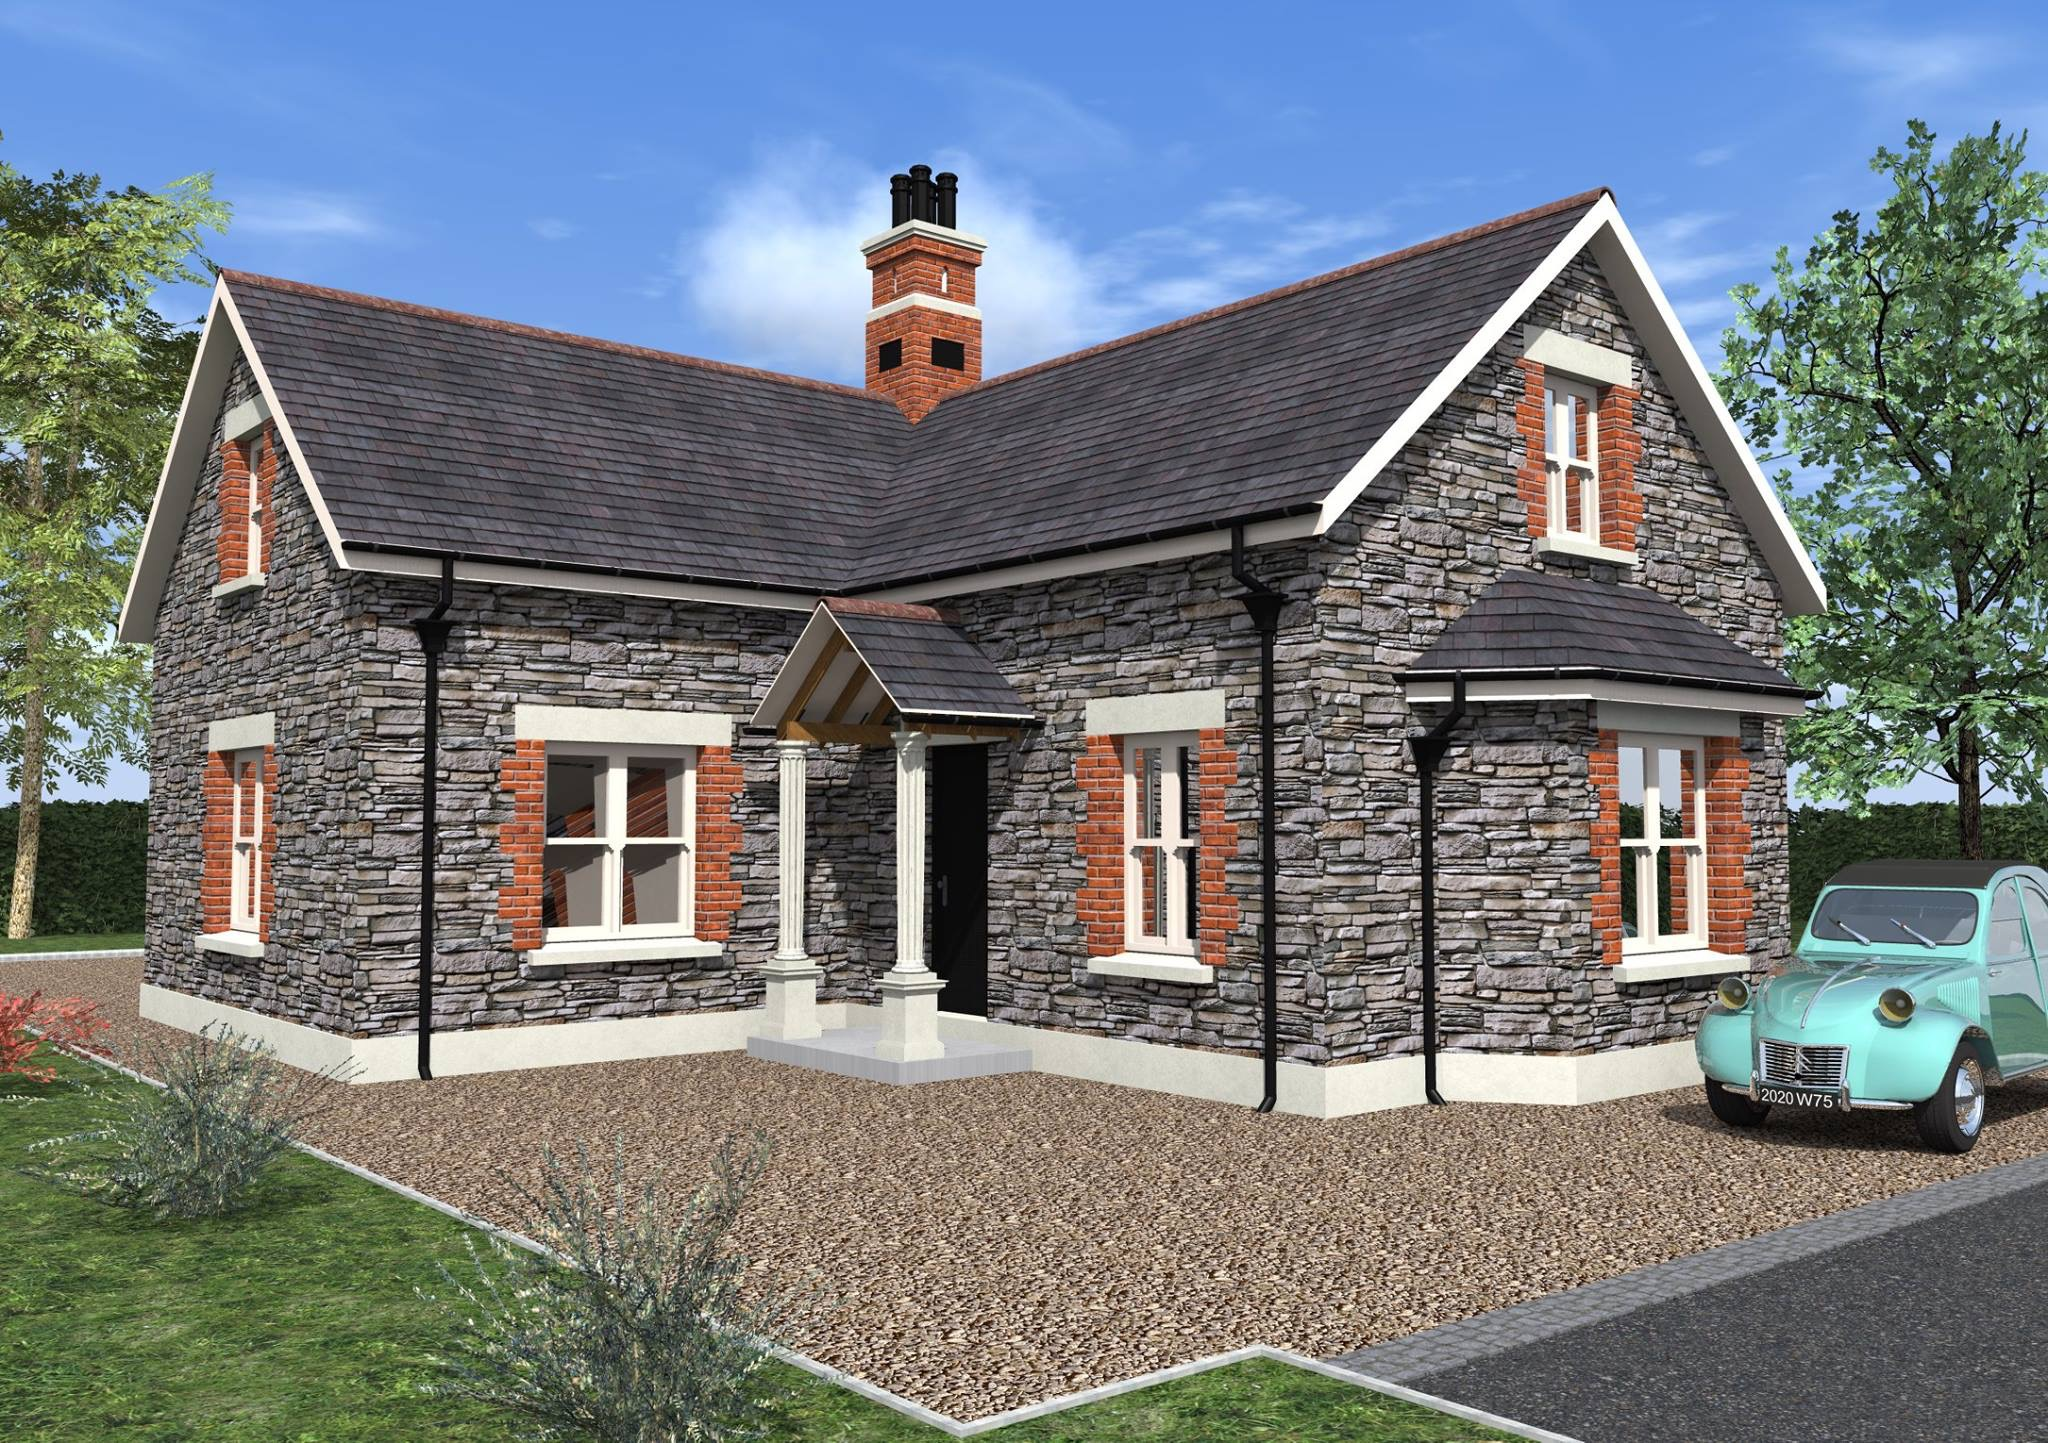 Stone Gate Lodge - 3D